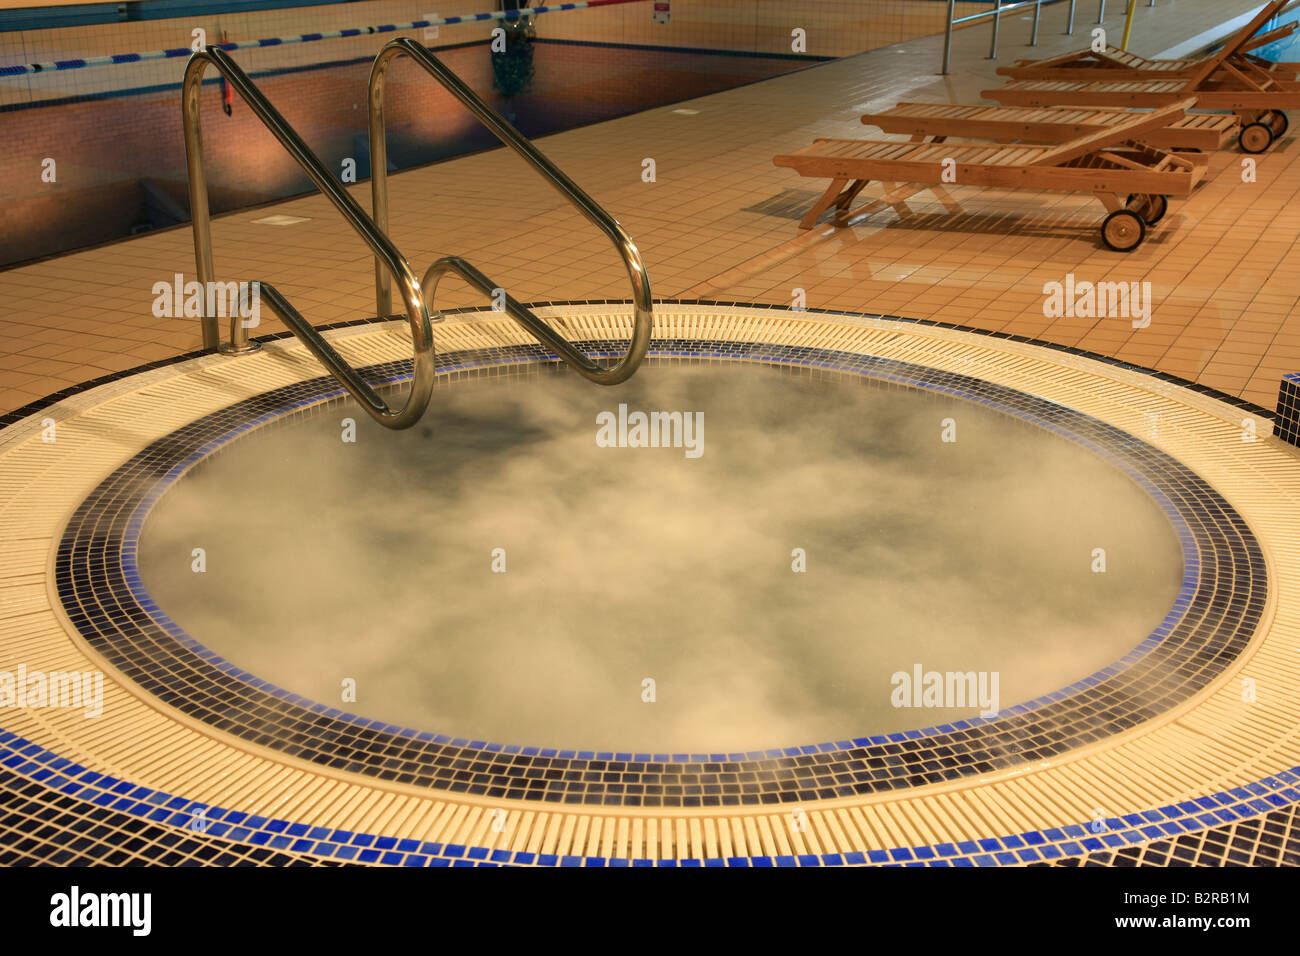 Indoor whirlpool Jacuzzi in an Esporta Spa Gym England Britian UK ...